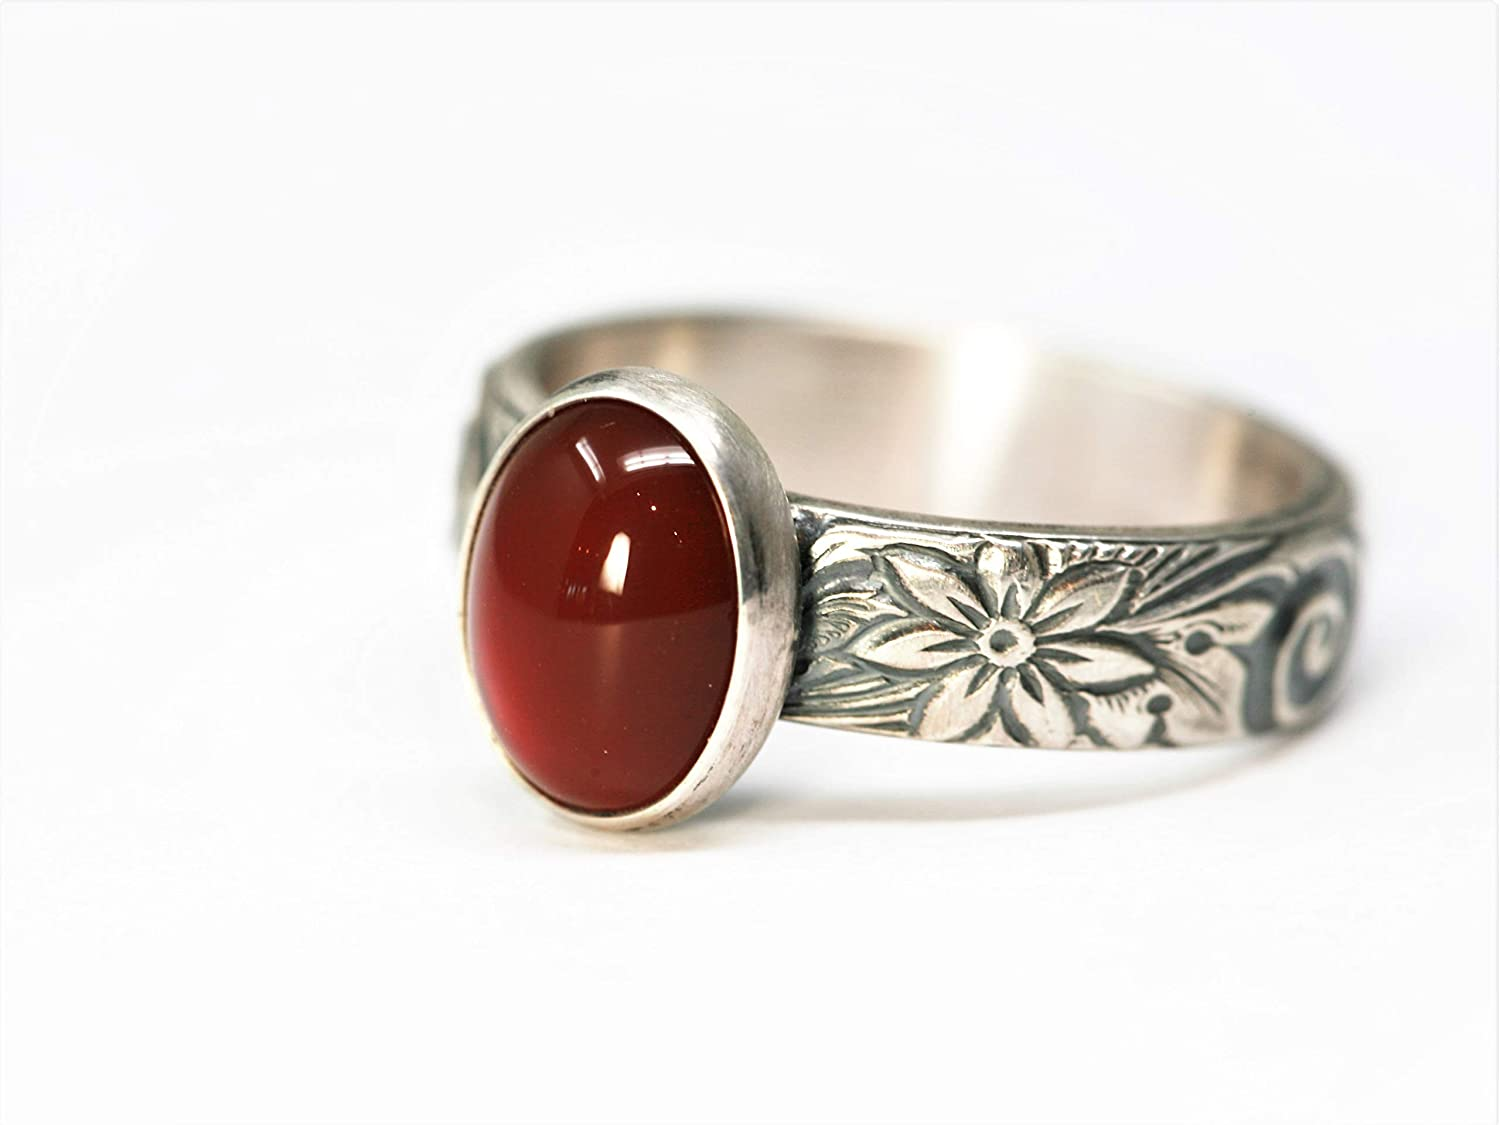 Carnelian and Sterling Silver Ring on Floral Pattern Band in Antique Finish